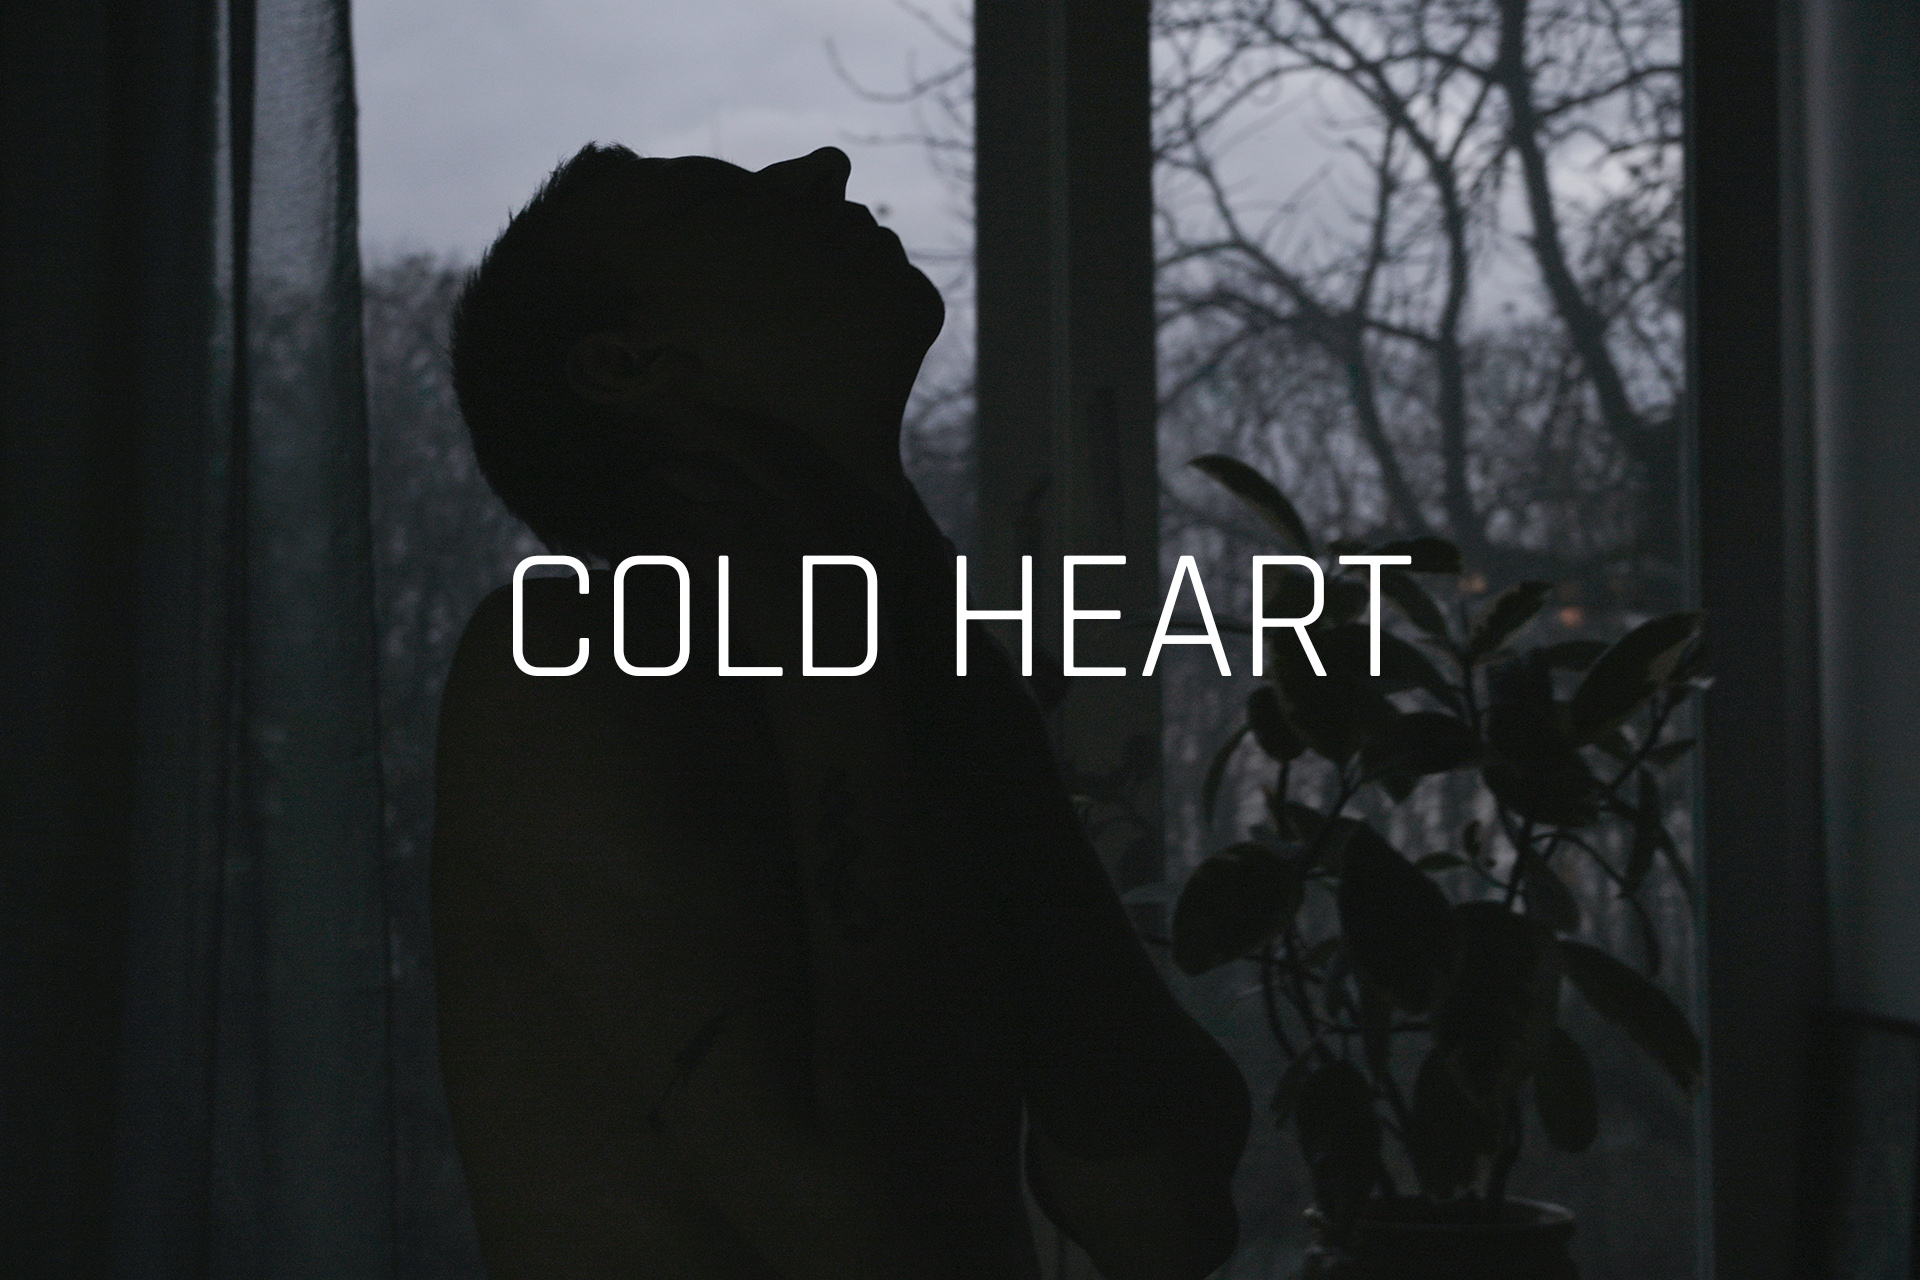 Cold heart - My Rode Reel 2020